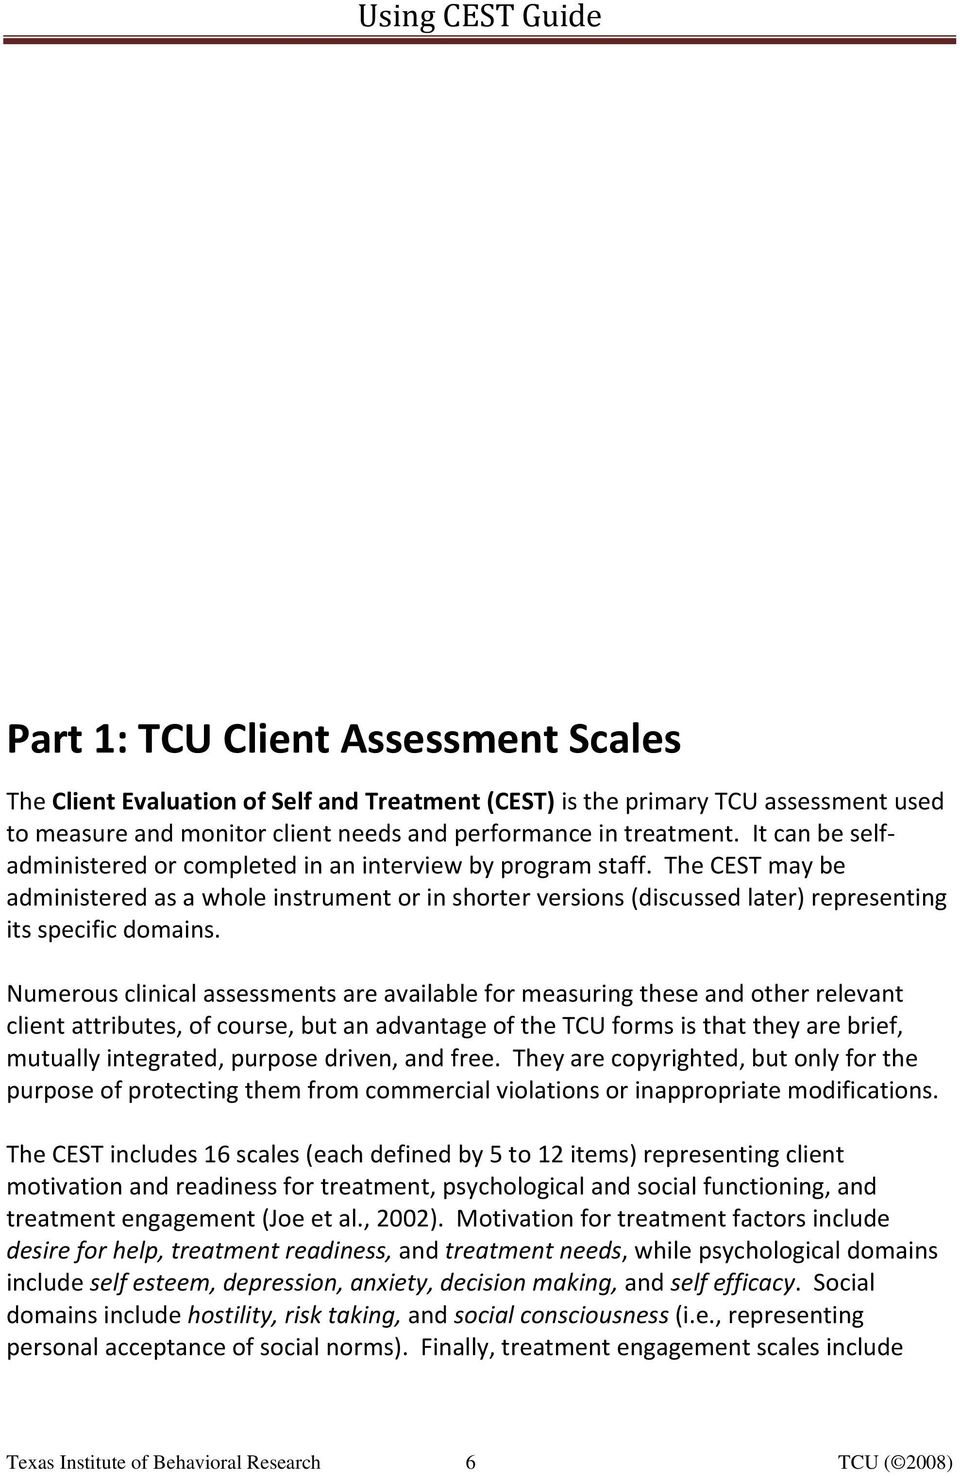 Numerous clinical assessments are available for measuring these and other relevant client attributes, of course, but an advantage of the TCU forms is that they are brief, mutually integrated, purpose